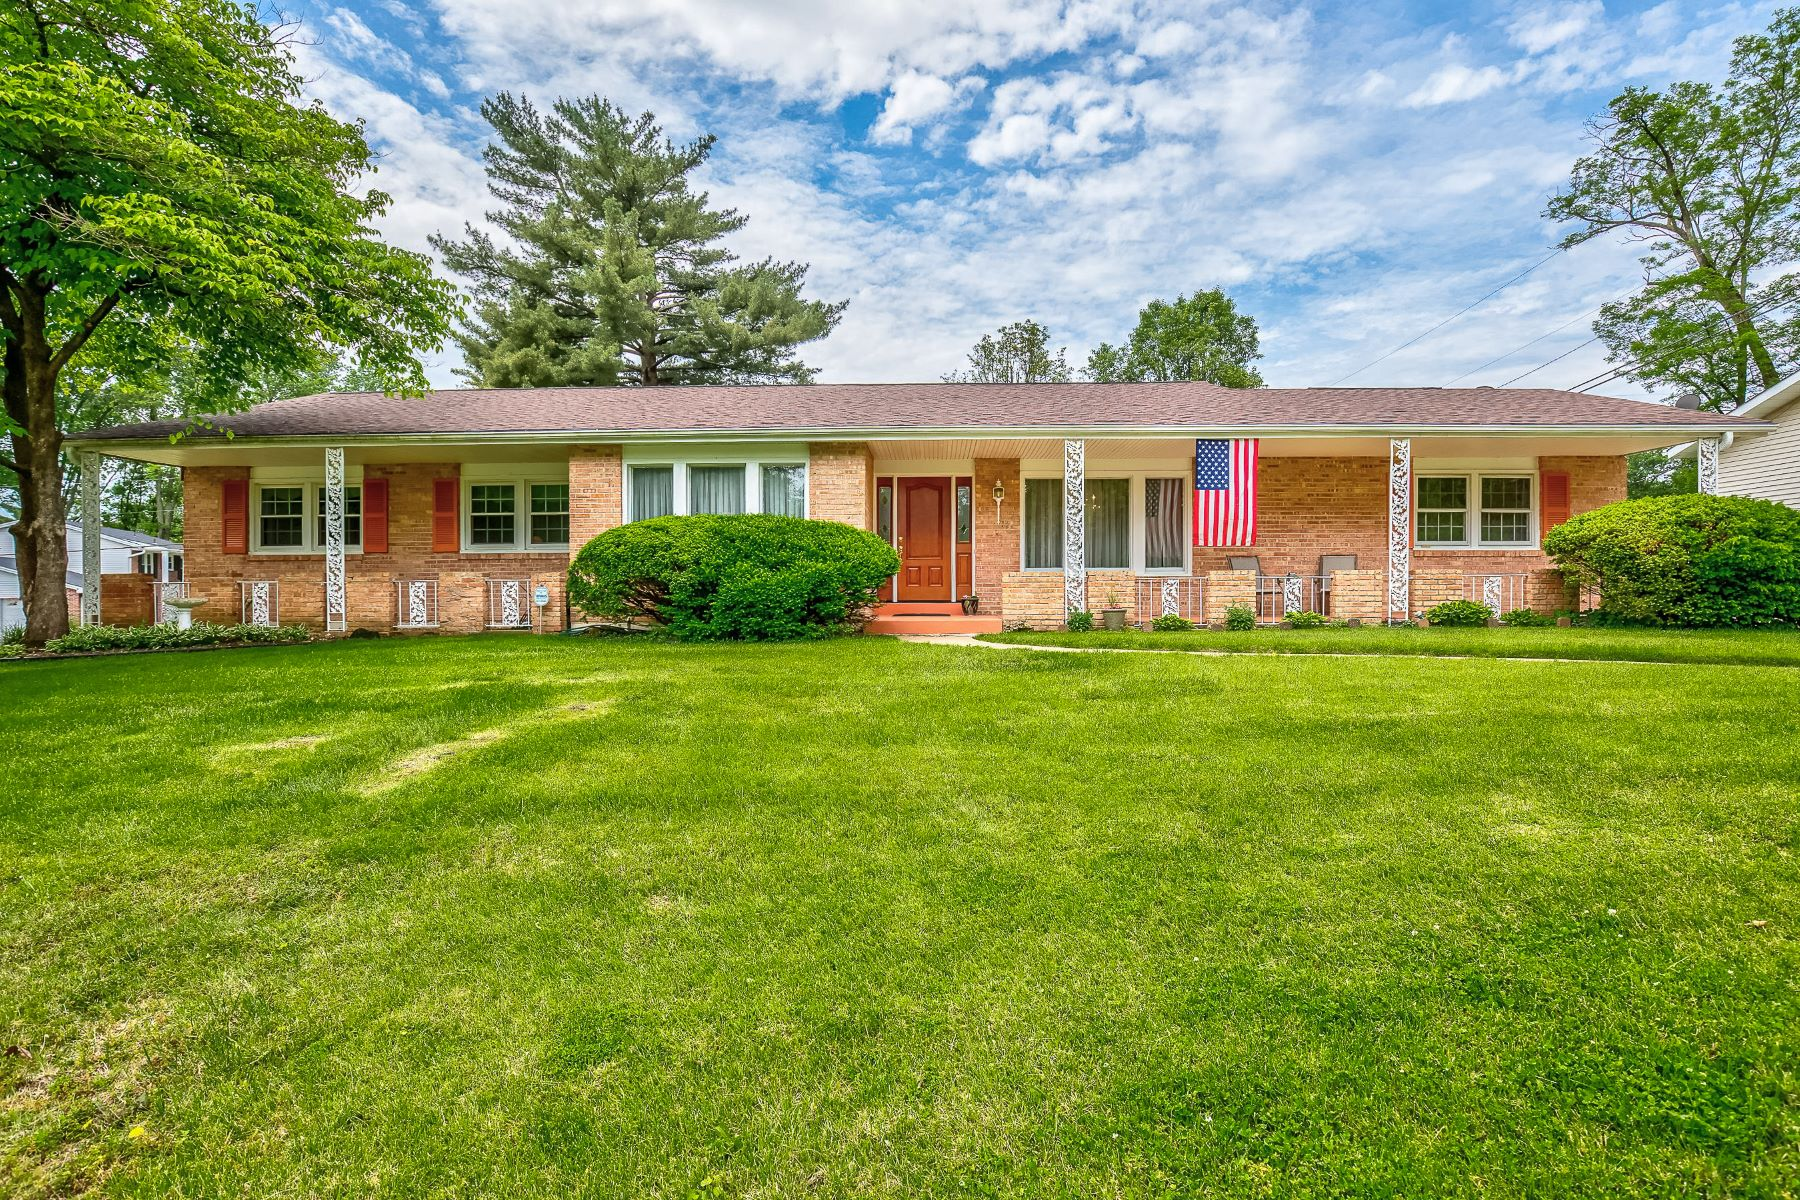 Single Family Homes for Sale at Spacious Ranch in Pristine Condition 30 Oakland Hills Drive Chesterfield, Missouri 63017 United States